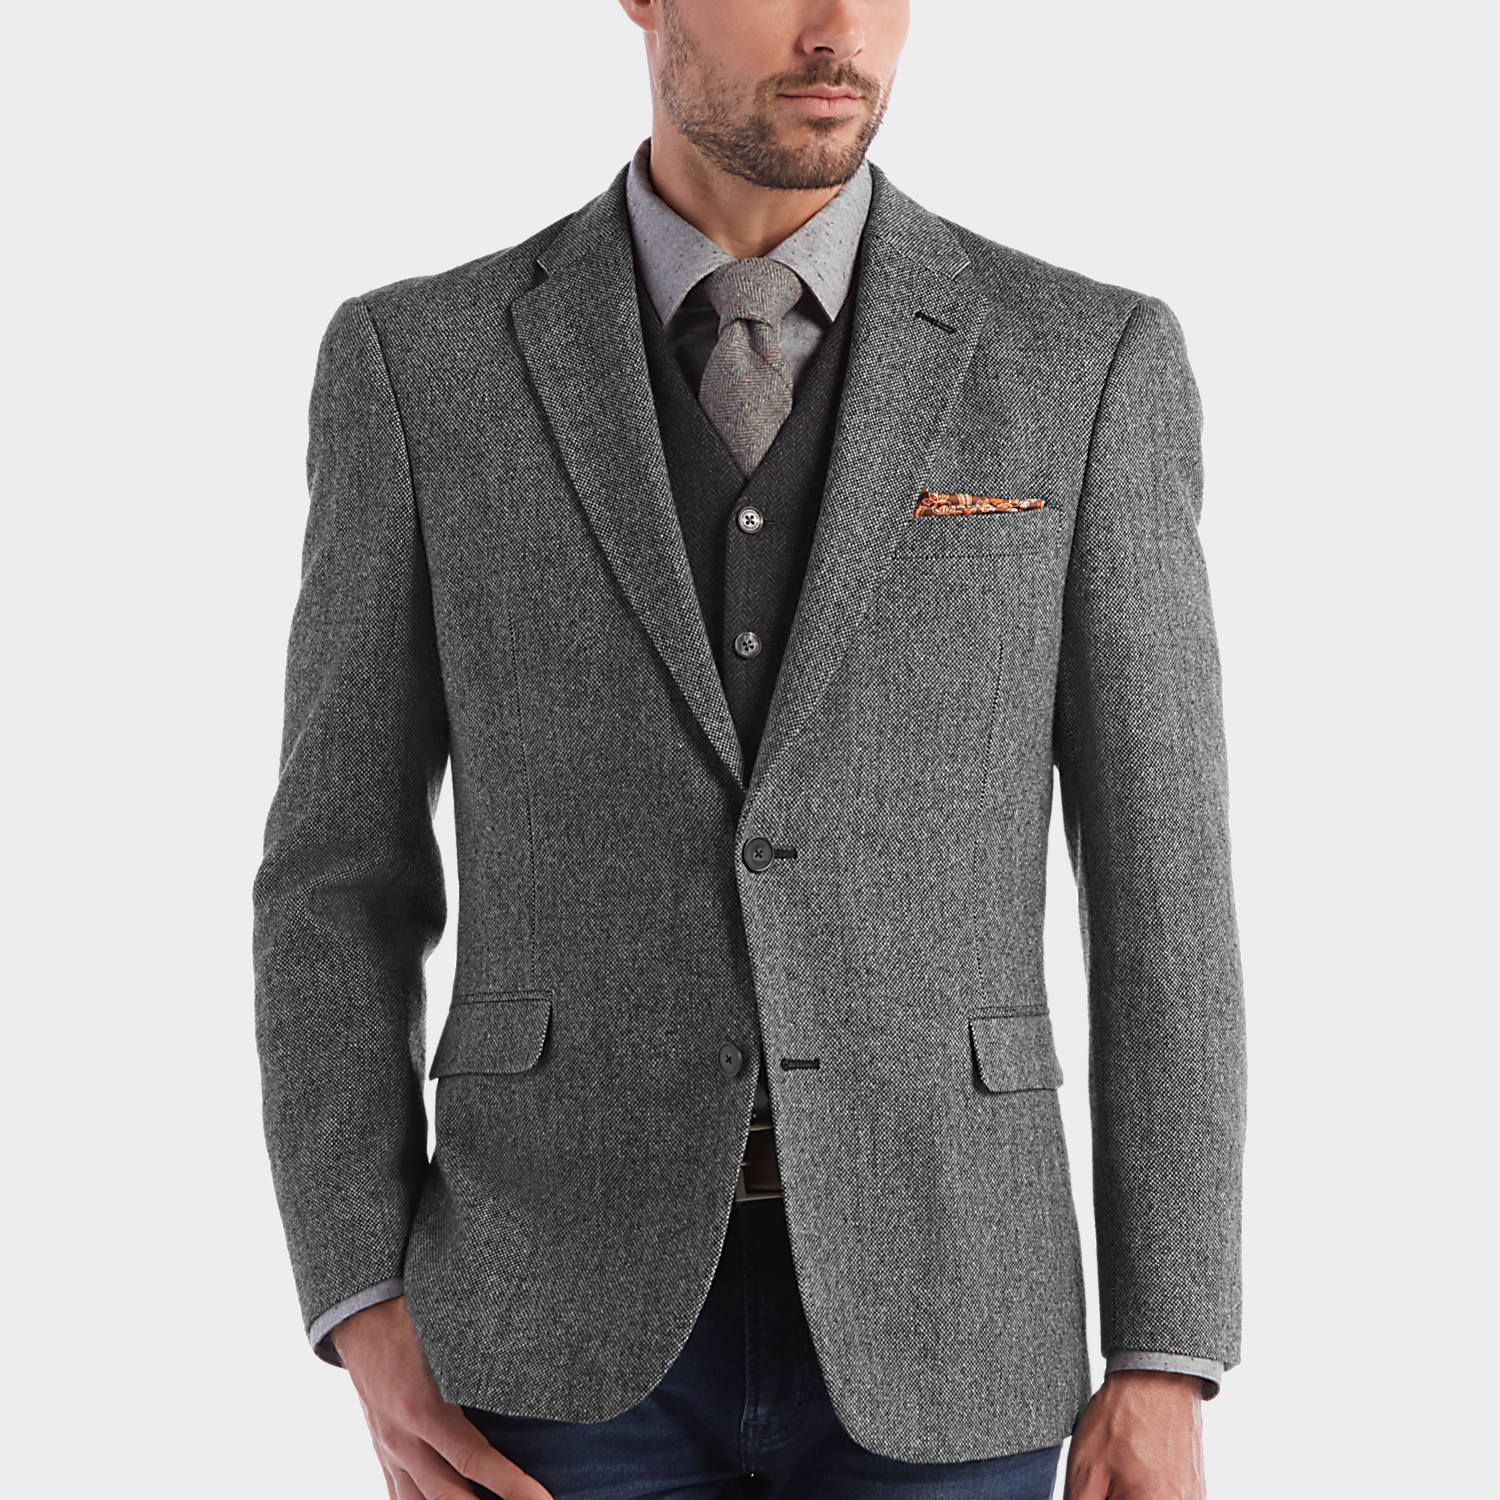 Buy a Tommy Hilfiger Black & White Tweed Slim Fit Sport Coat and ...